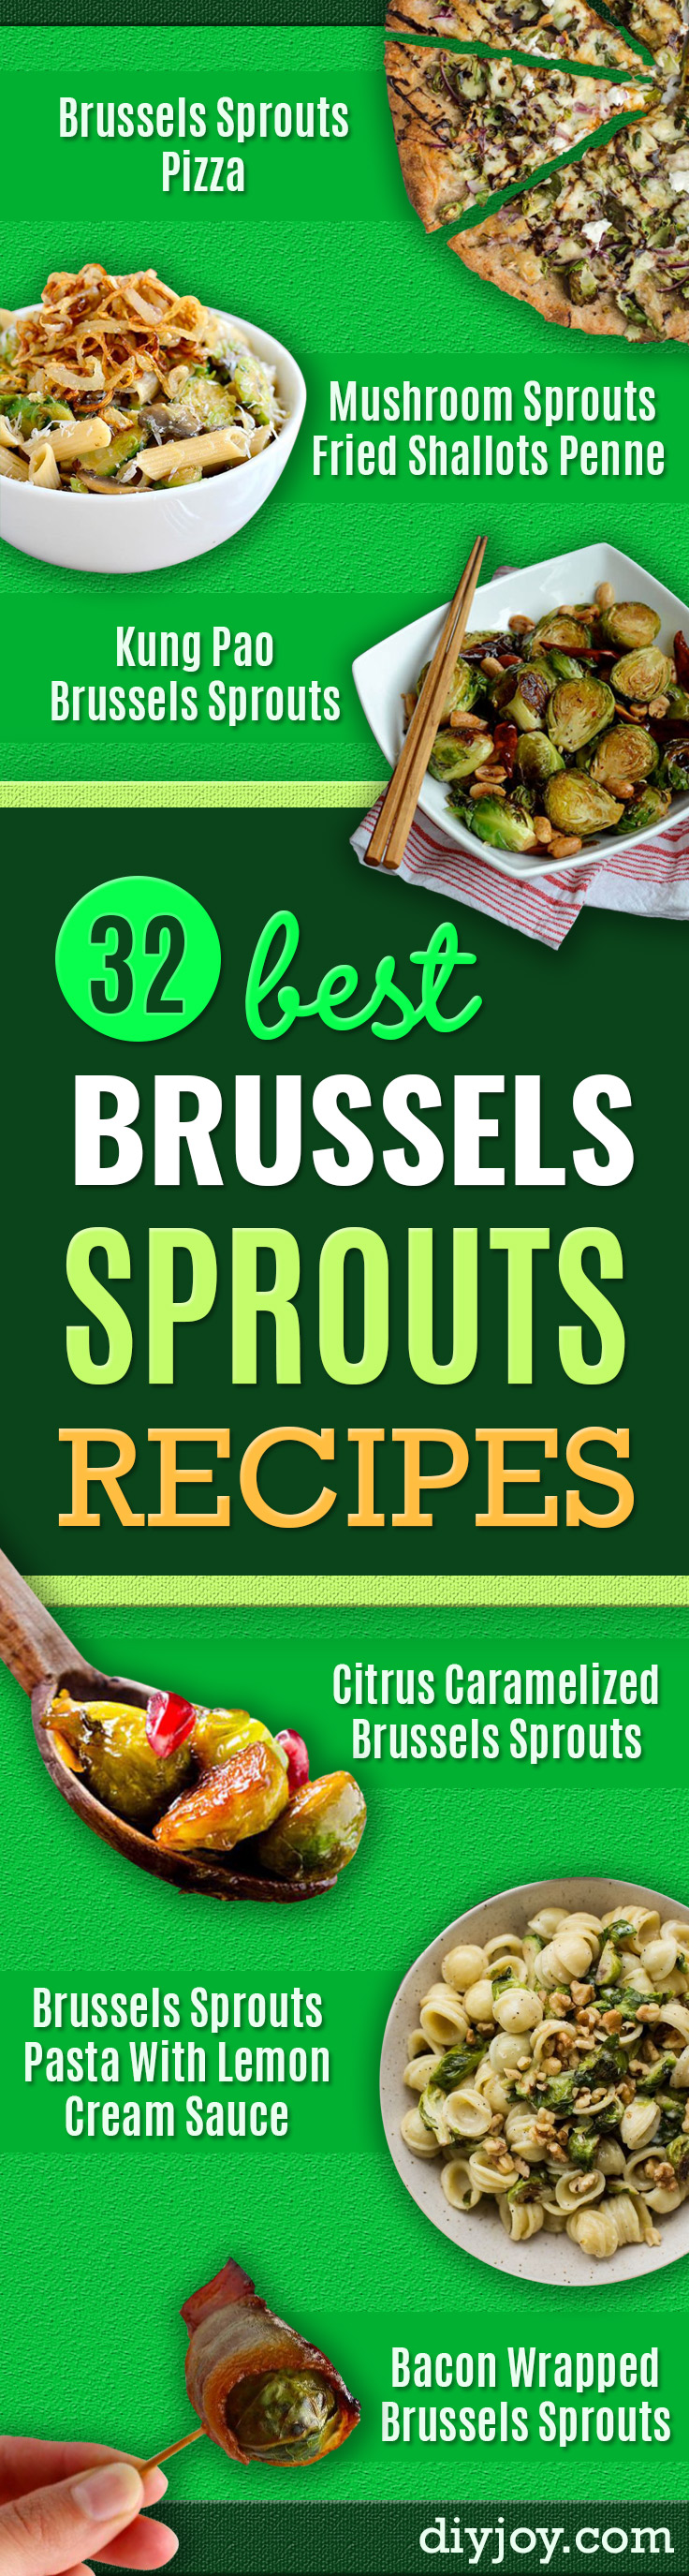 brussel sprout recipes - easy brussel sprouts idea and Quick Delicious Ideas for Making Brussel Sprouts With Bacon, Roasted, Creamy, Healthy, Baked, Sauteed, Crockpot, Grilled, Shredded and Salad Recipe Ideas - Cool Lunches, Dinner, Snack, Side and DIY Dinner Vegetable Dishes